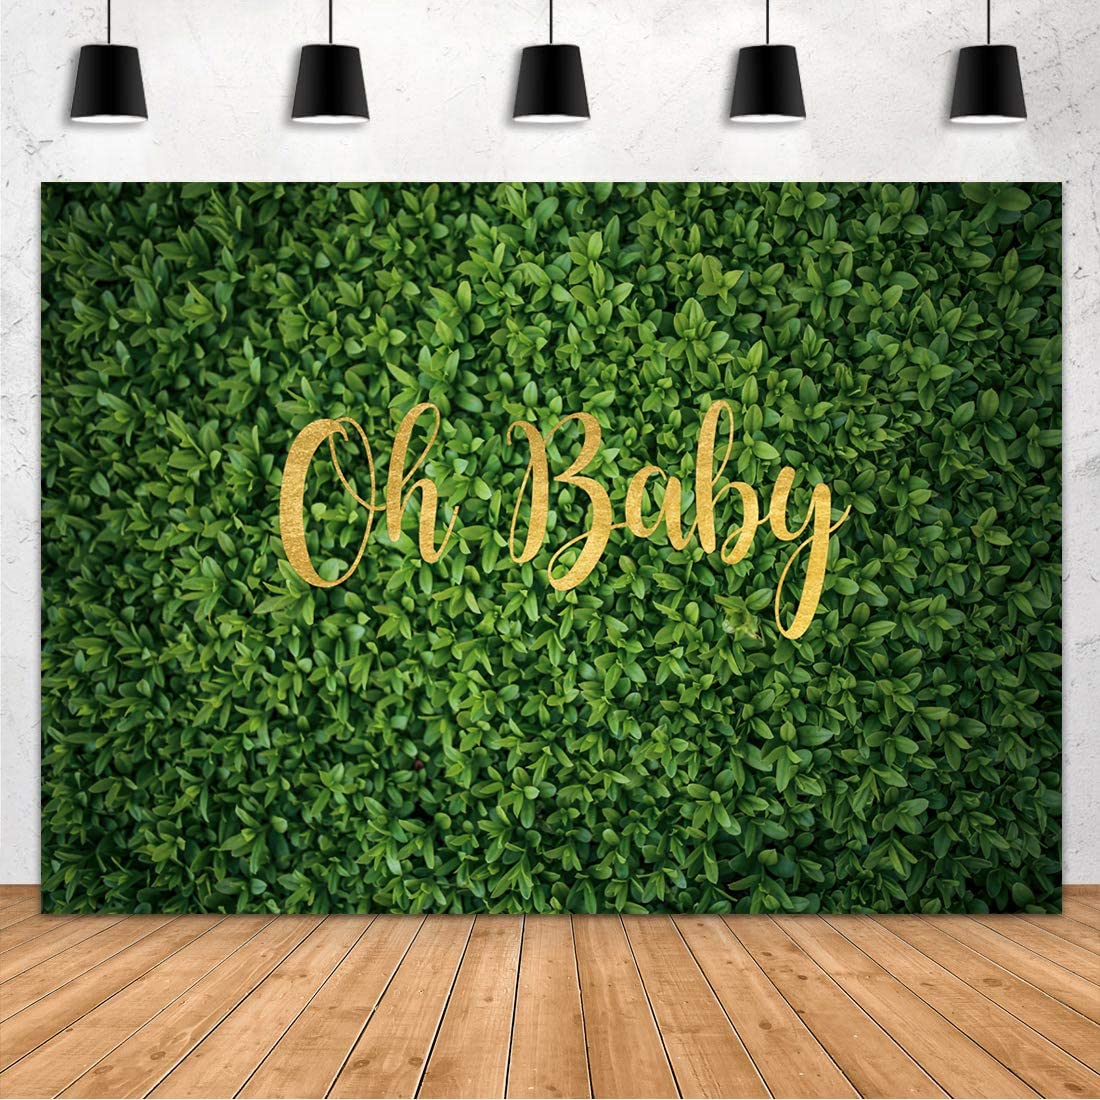 Aperturee Oh Baby Green Leaves Wall Backdrop 7x5FT Spring Nature Lawn Safari Outdoorsy Grass Photography Background Birthday Boy Girl Baby Shower Newborn Photo Booth Studio Props Party Decoration